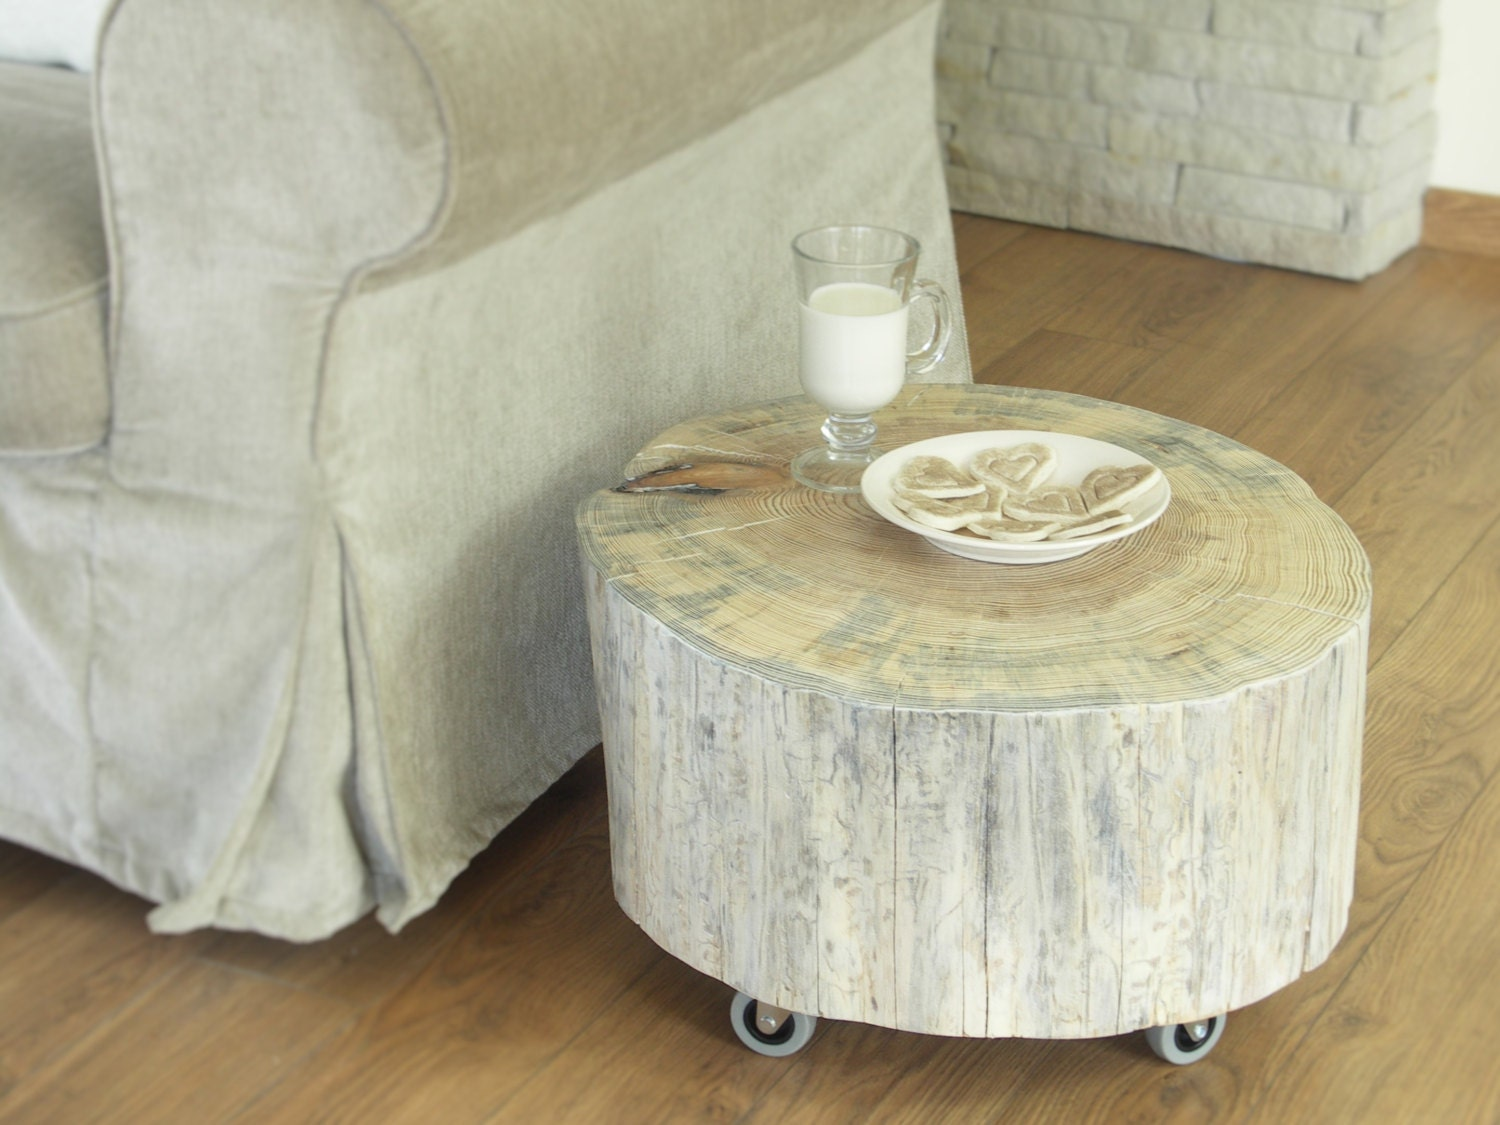 Lieblich Finest Best Tree Trunk Side Table Style White Wooden Stump Rolling Casters  Baumstamm Tisch Sgabello Ceppo Di Legno With Tische Sthle With Mbel Afrika  Style